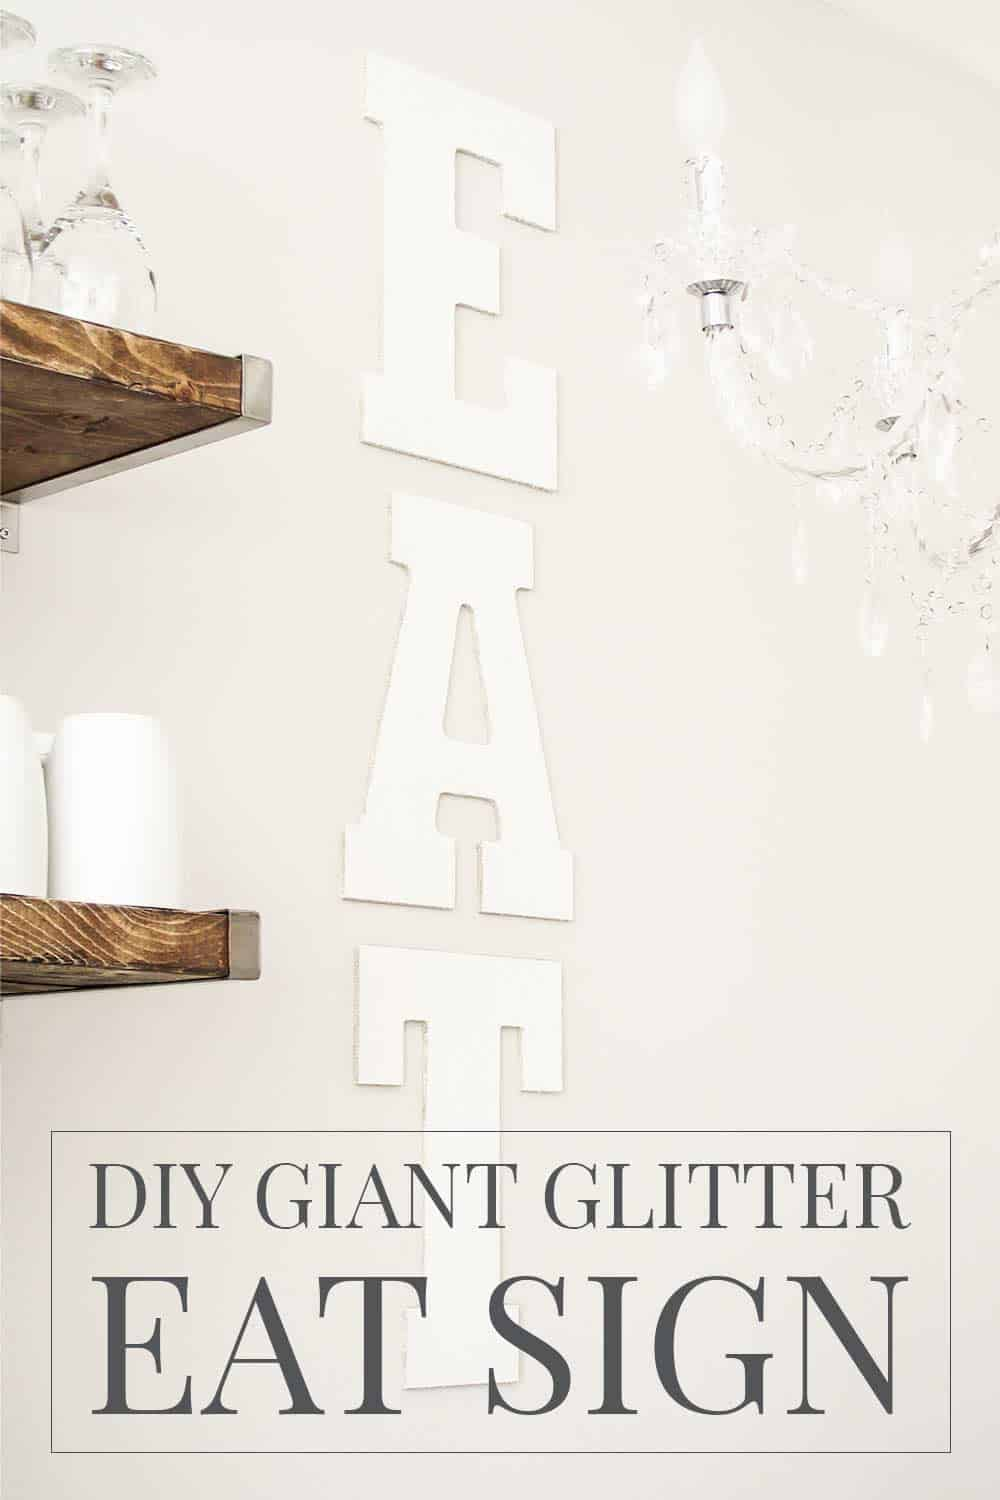 Giant glitter EAT sign on wall of kitchen.